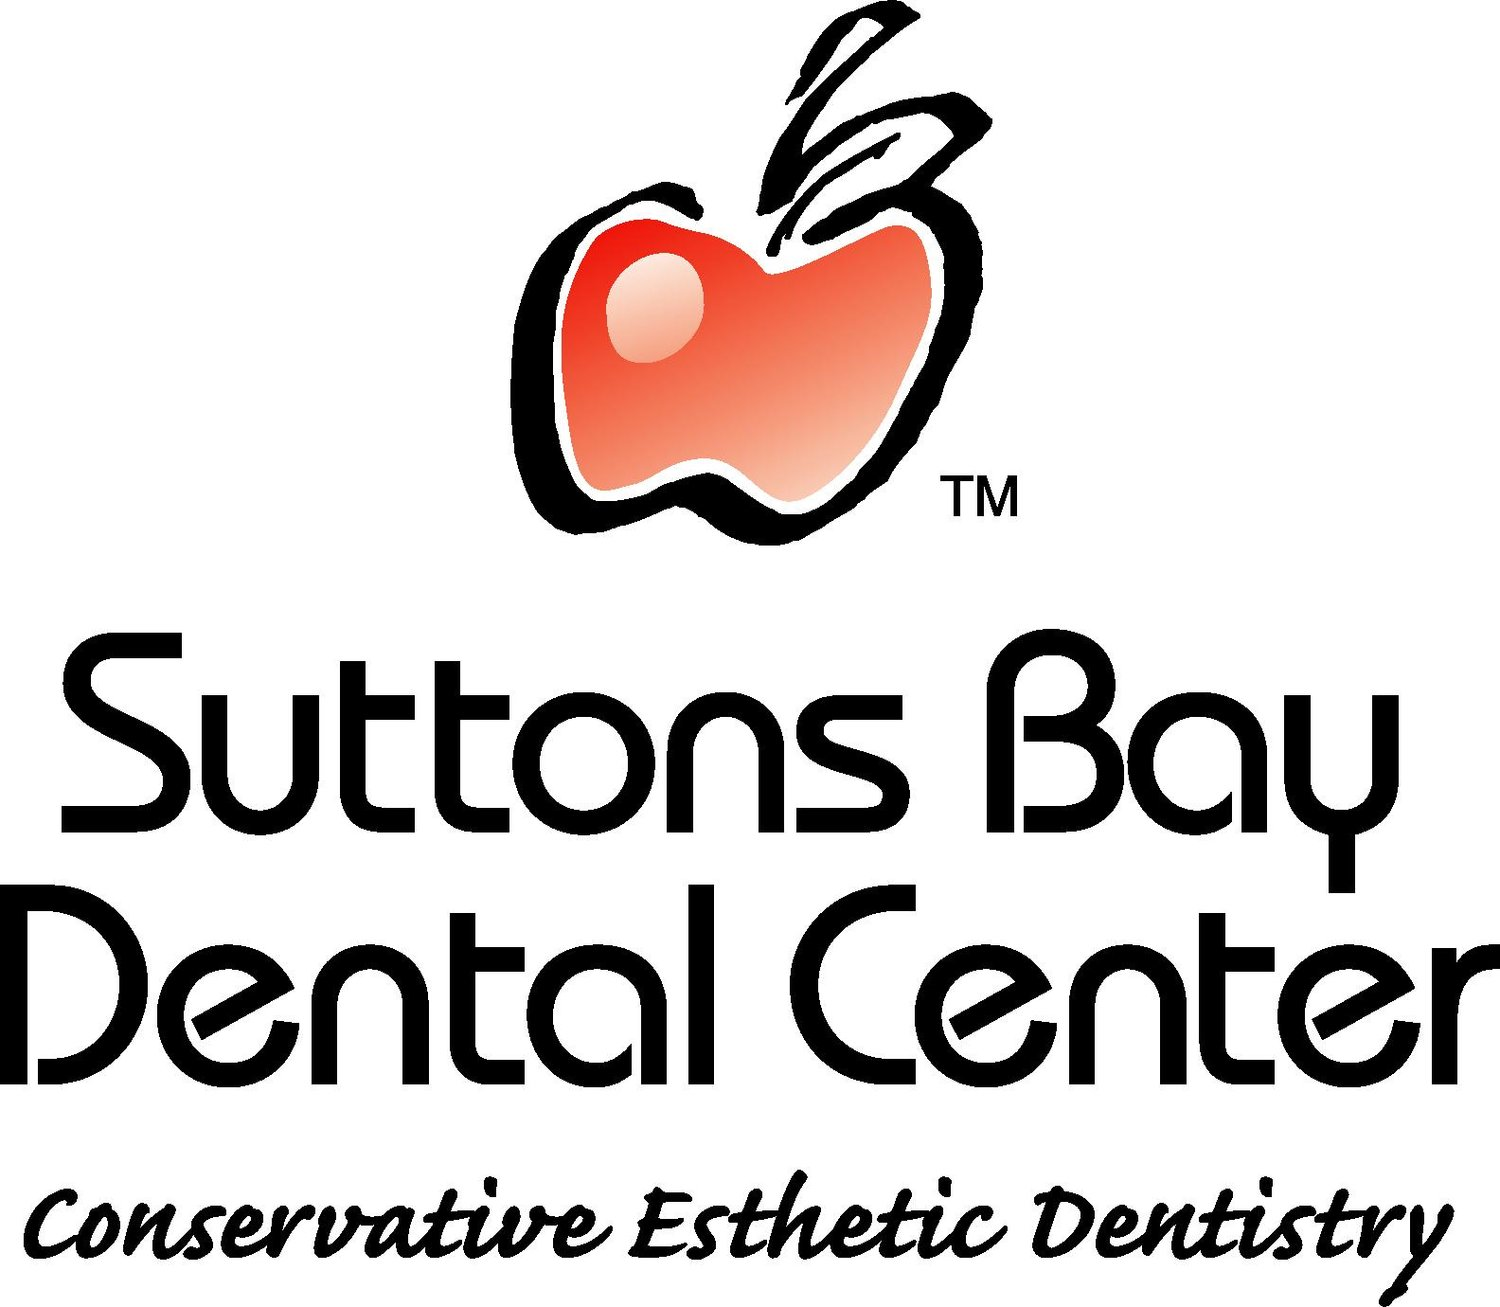 Suttons Bay Dental Center